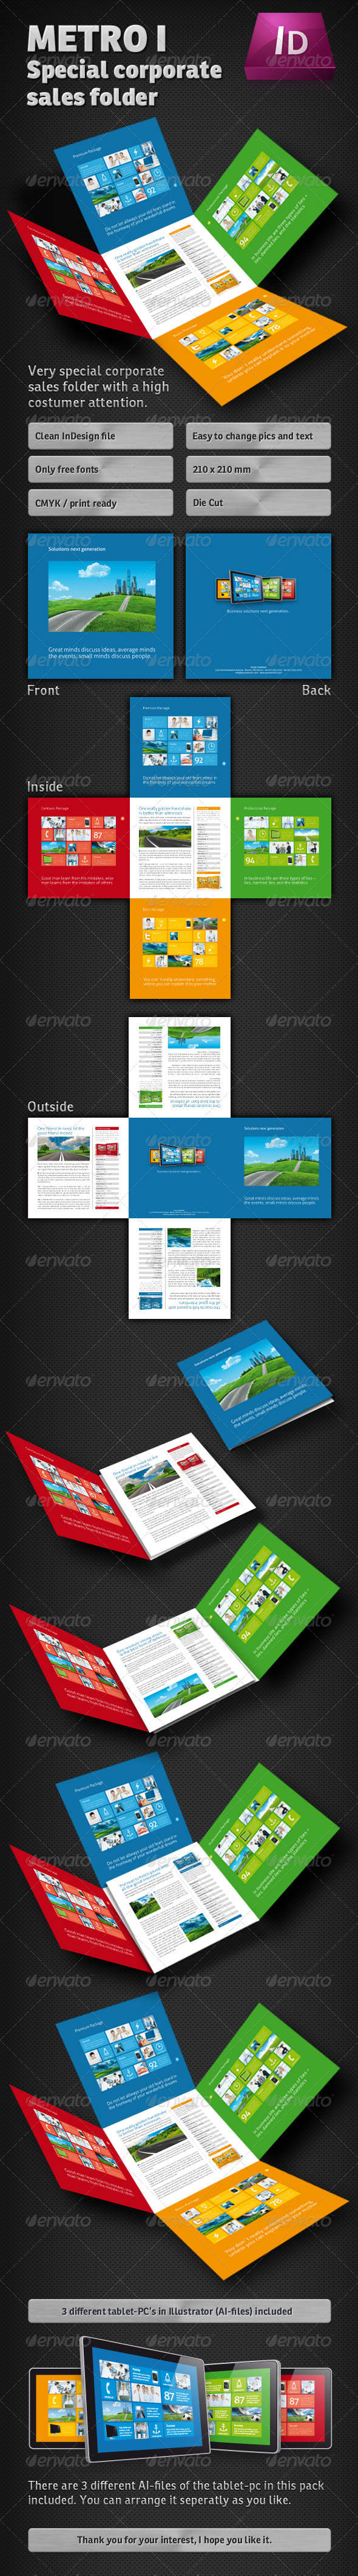 GraphicRiver Metro I Sales Folder 1496967